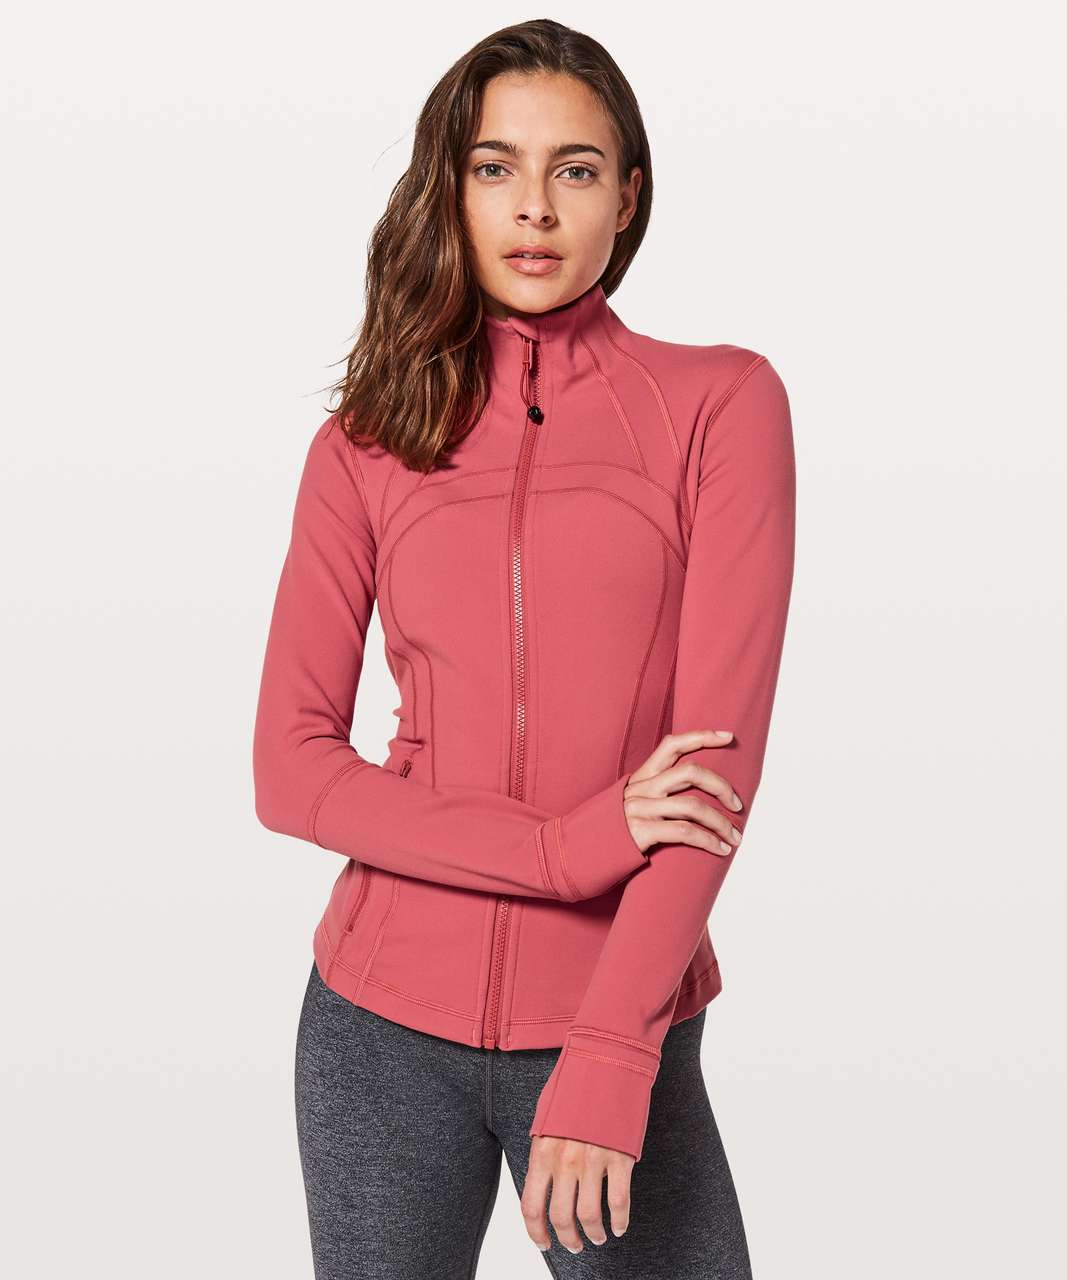 Lululemon Define Jacket - Dark Canyon